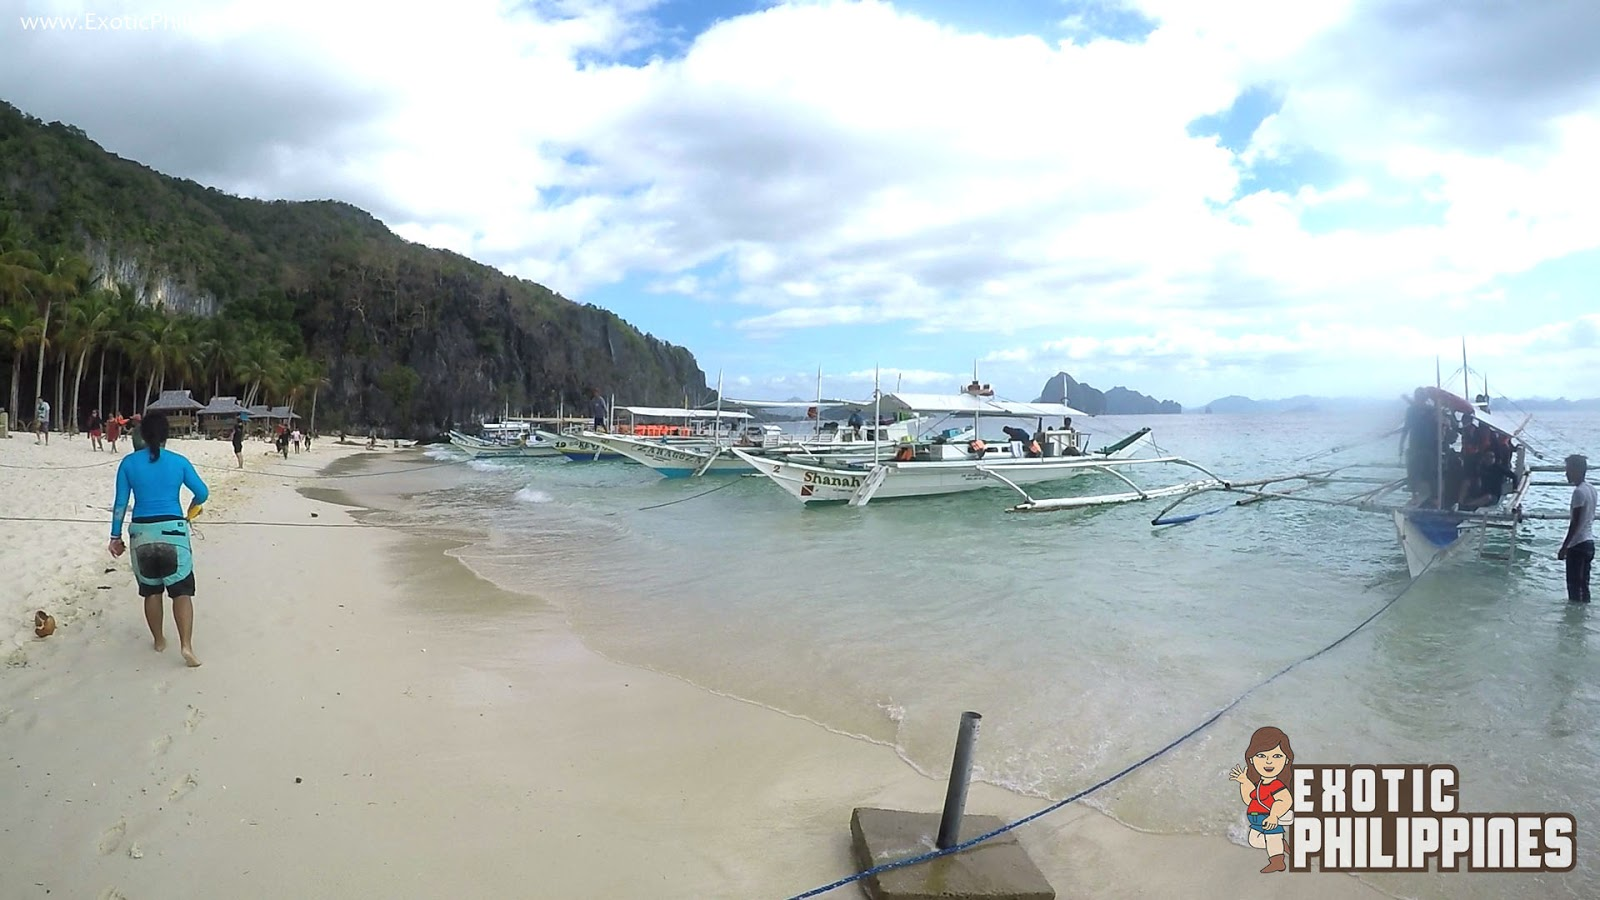 7 Commandos Beach El Nido Palawan Island Hopping tour A Exotic Philippines Travel Blog Blogger Vlog